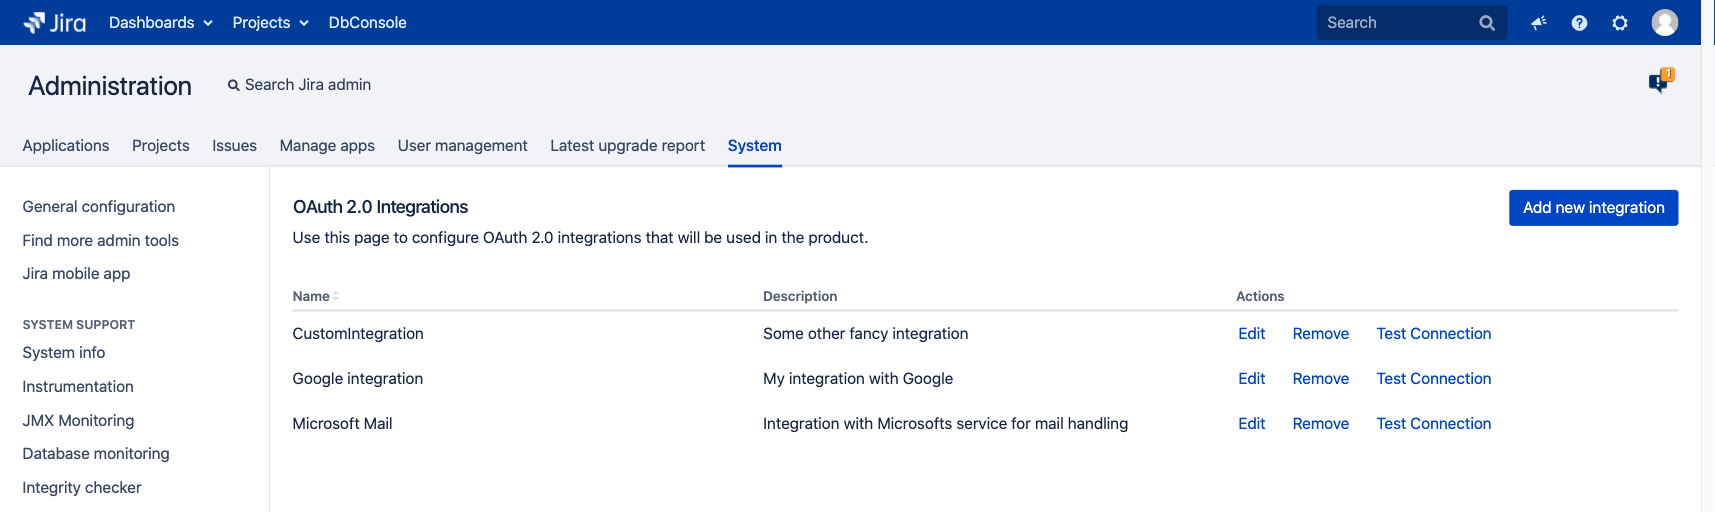 OAuth 2.0 integrations page in the Jira administration console.